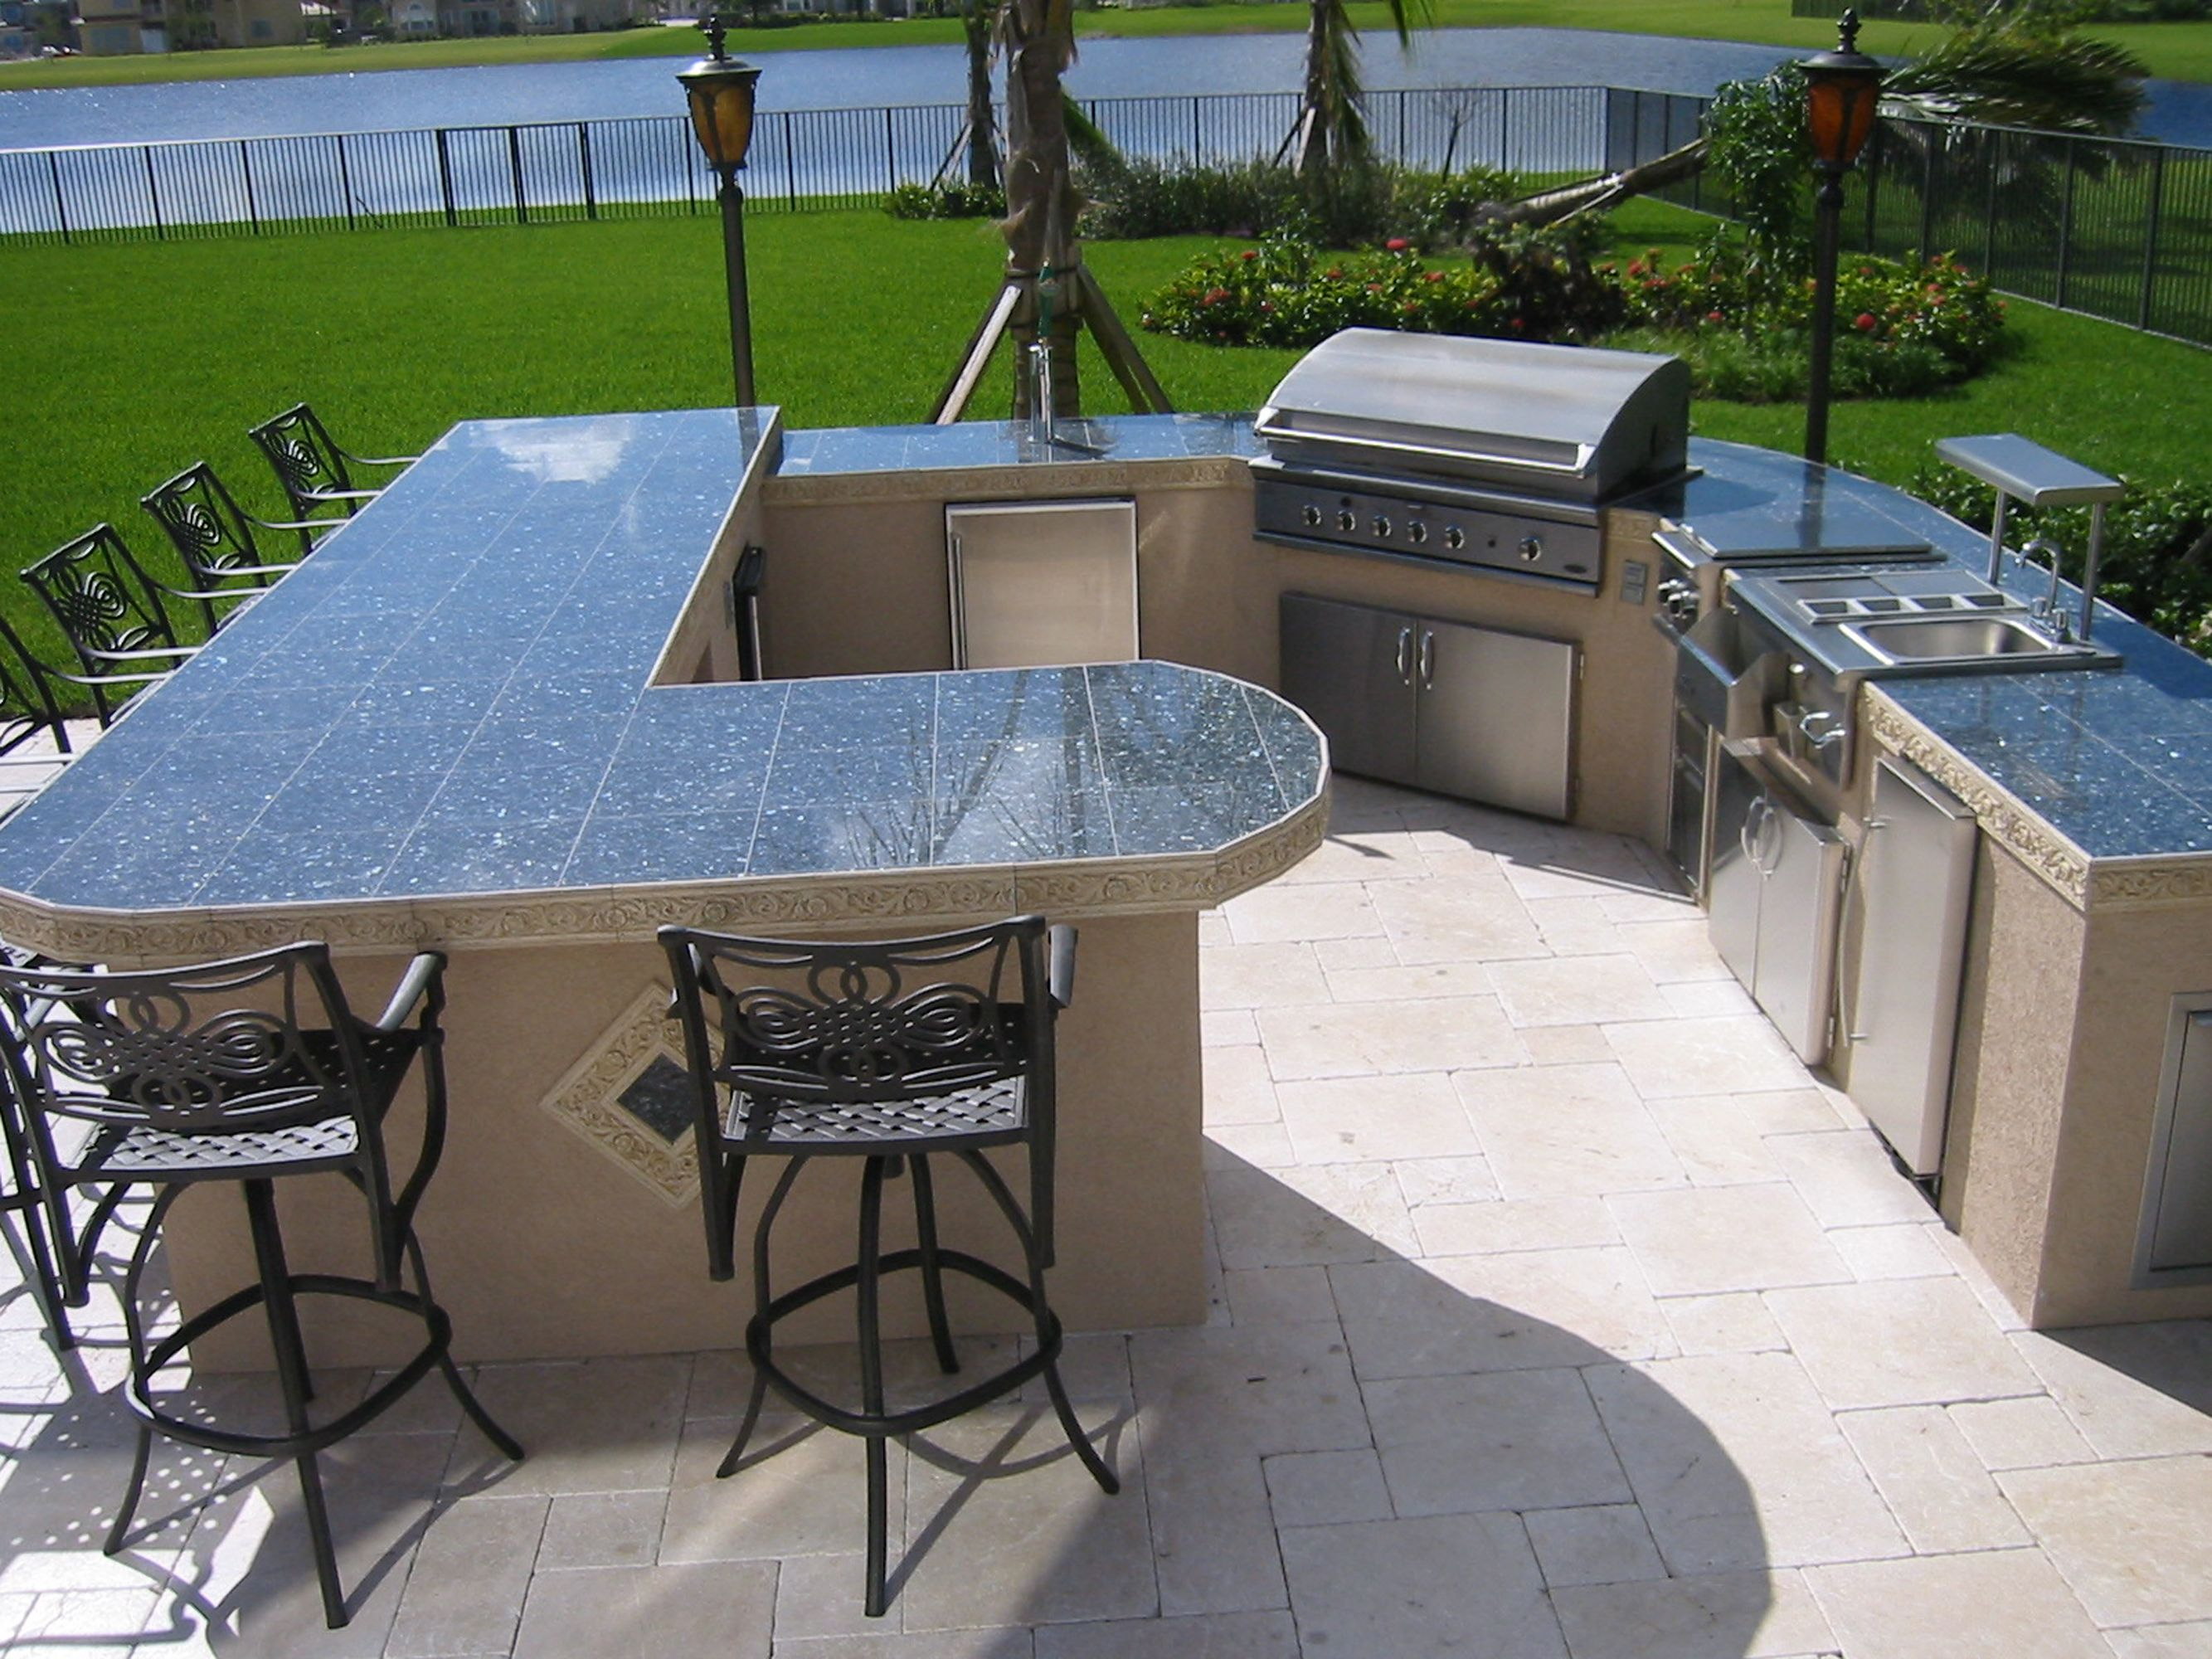 Outdoor kitchen design images backyard bar bar plans for Backyard built in bbq ideas